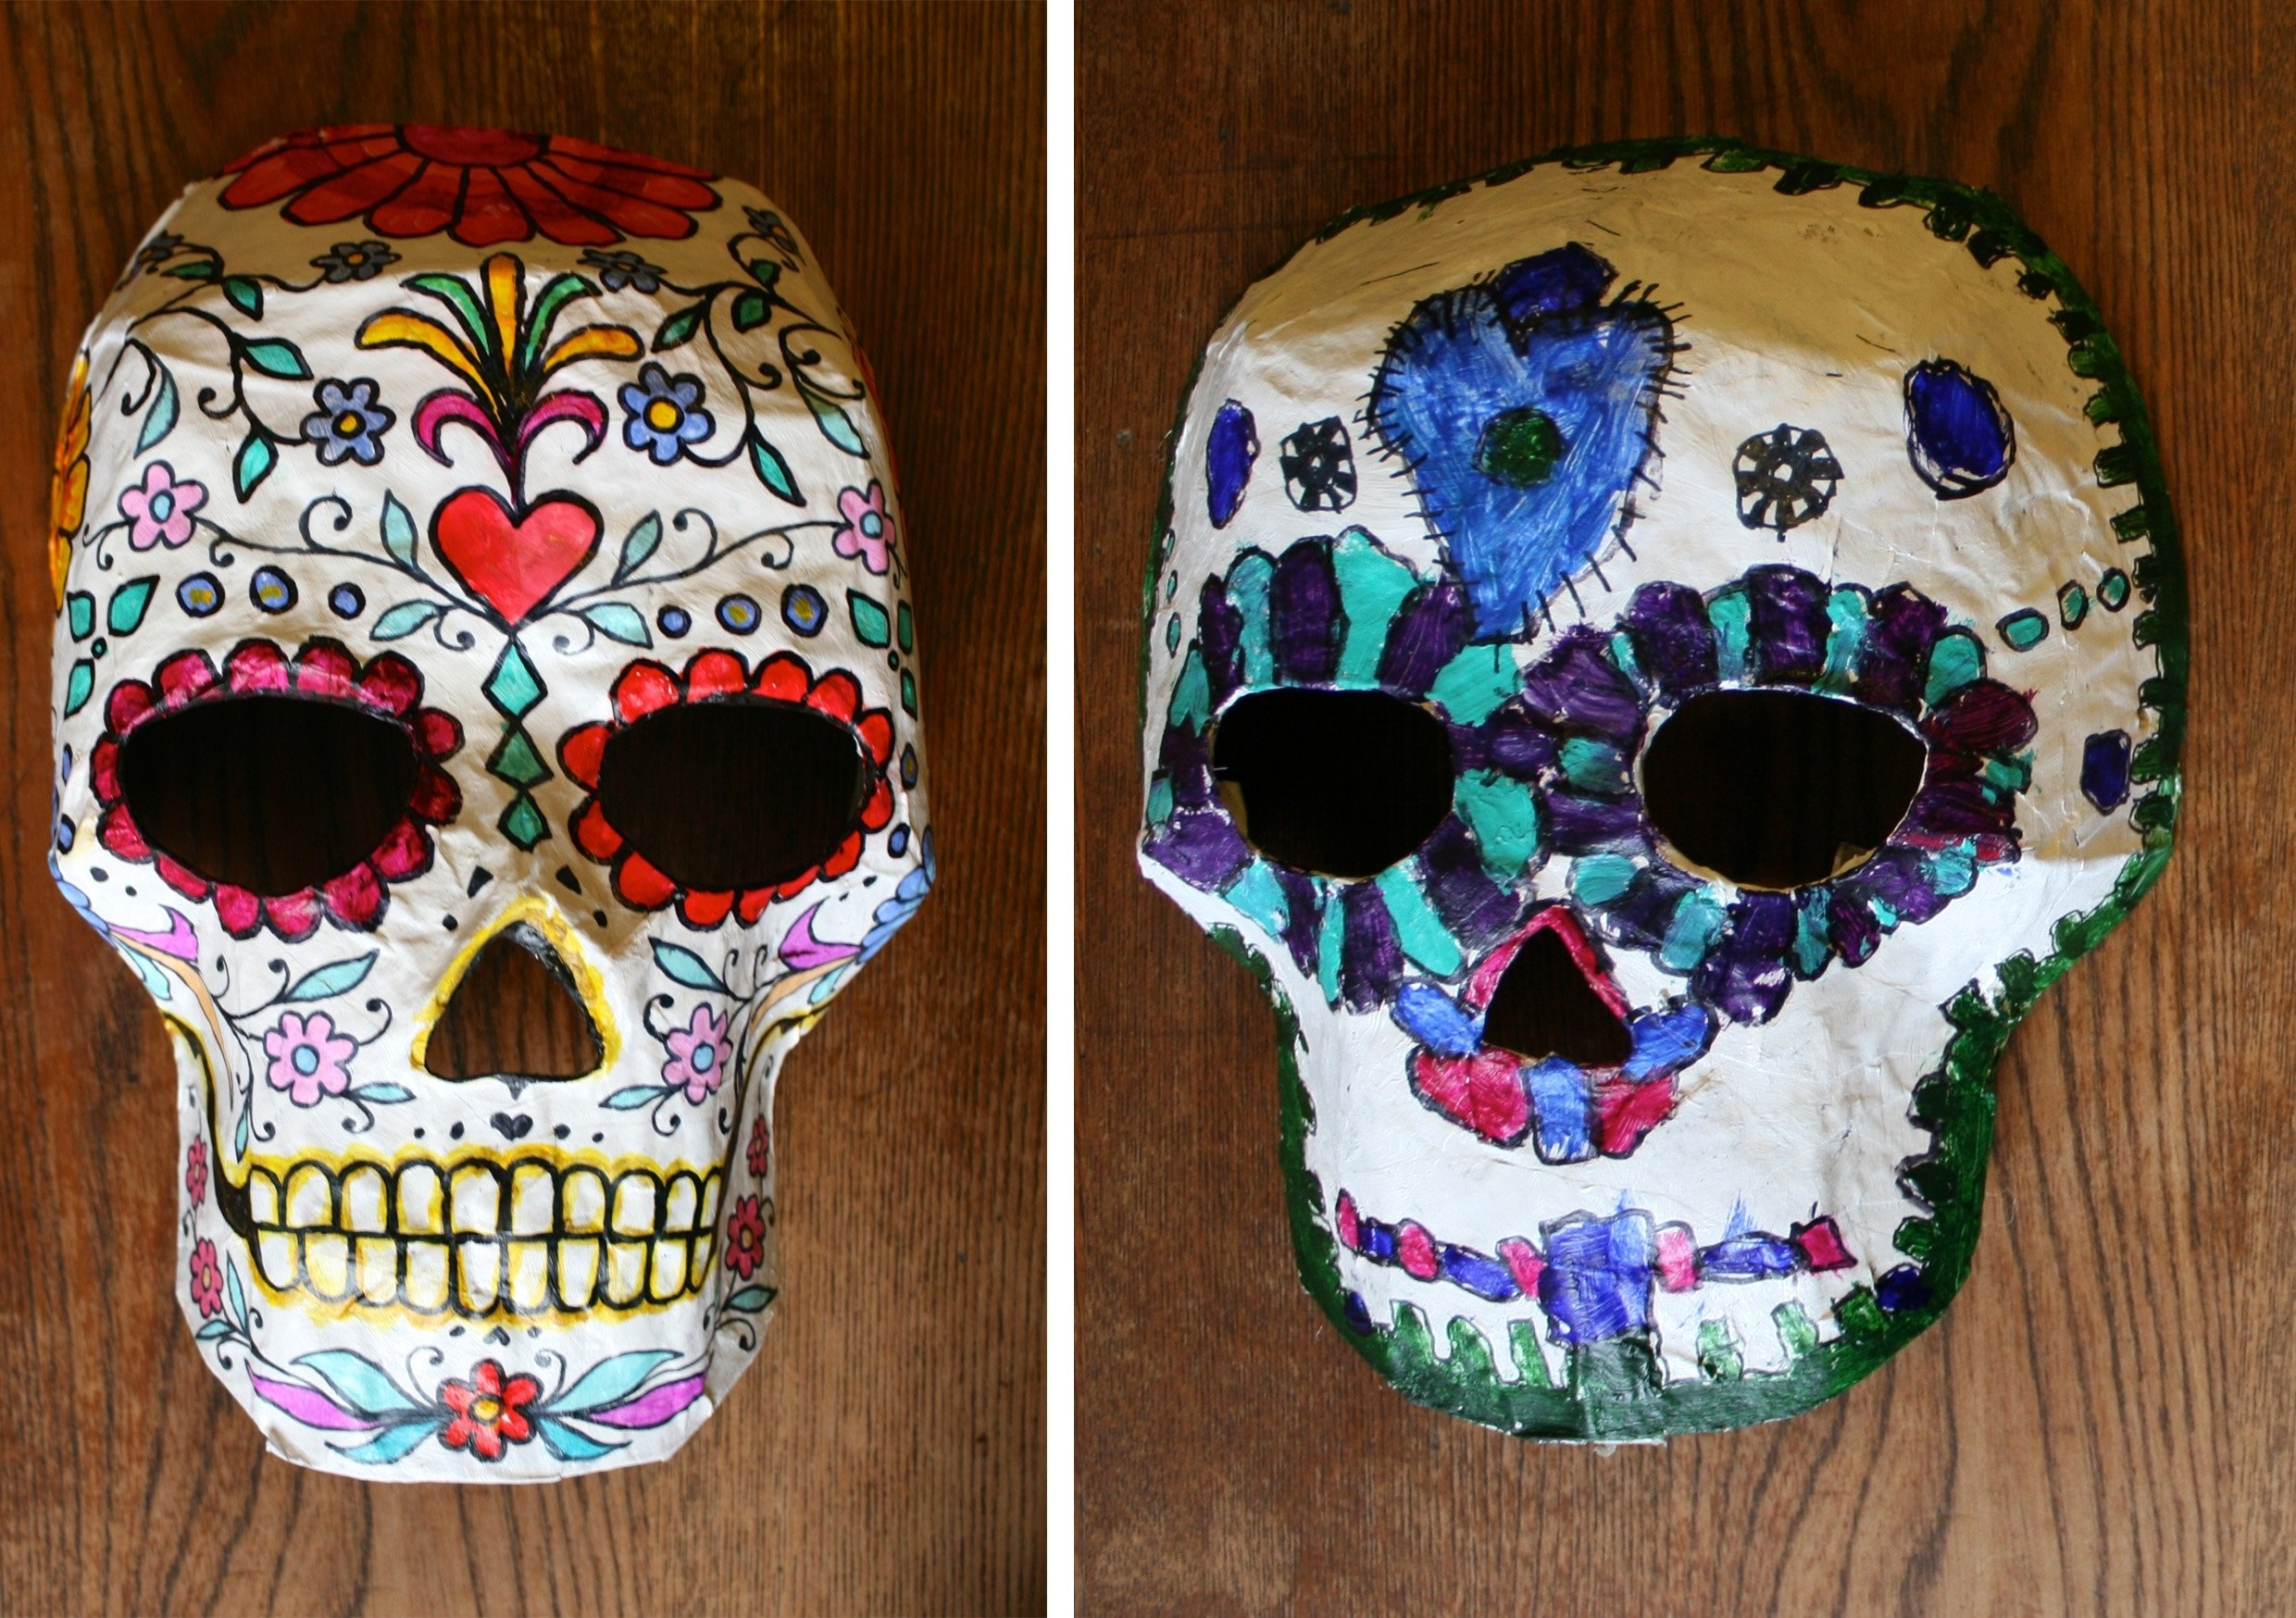 10 Famous Day Of The Dead Craft Ideas day of the dead crafts masks madetoya